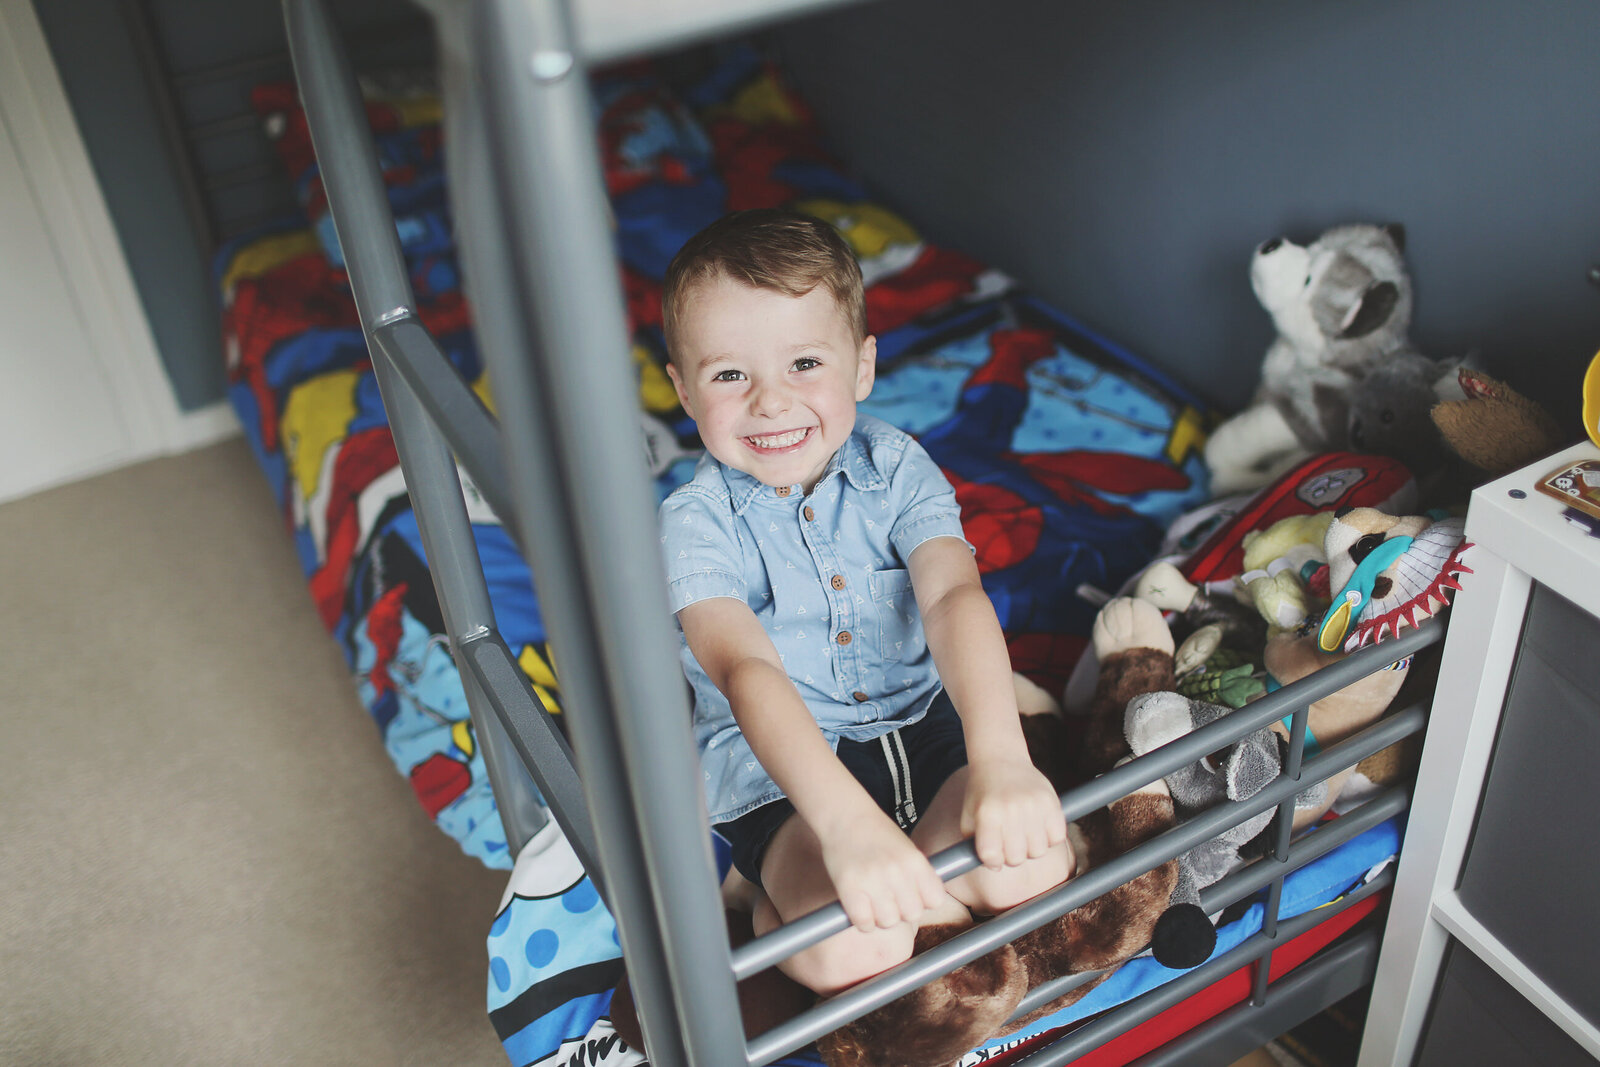 FP_FAMILY-LITTLE-BOY-SMILES-SPIDERMAN-BEDDING-0032